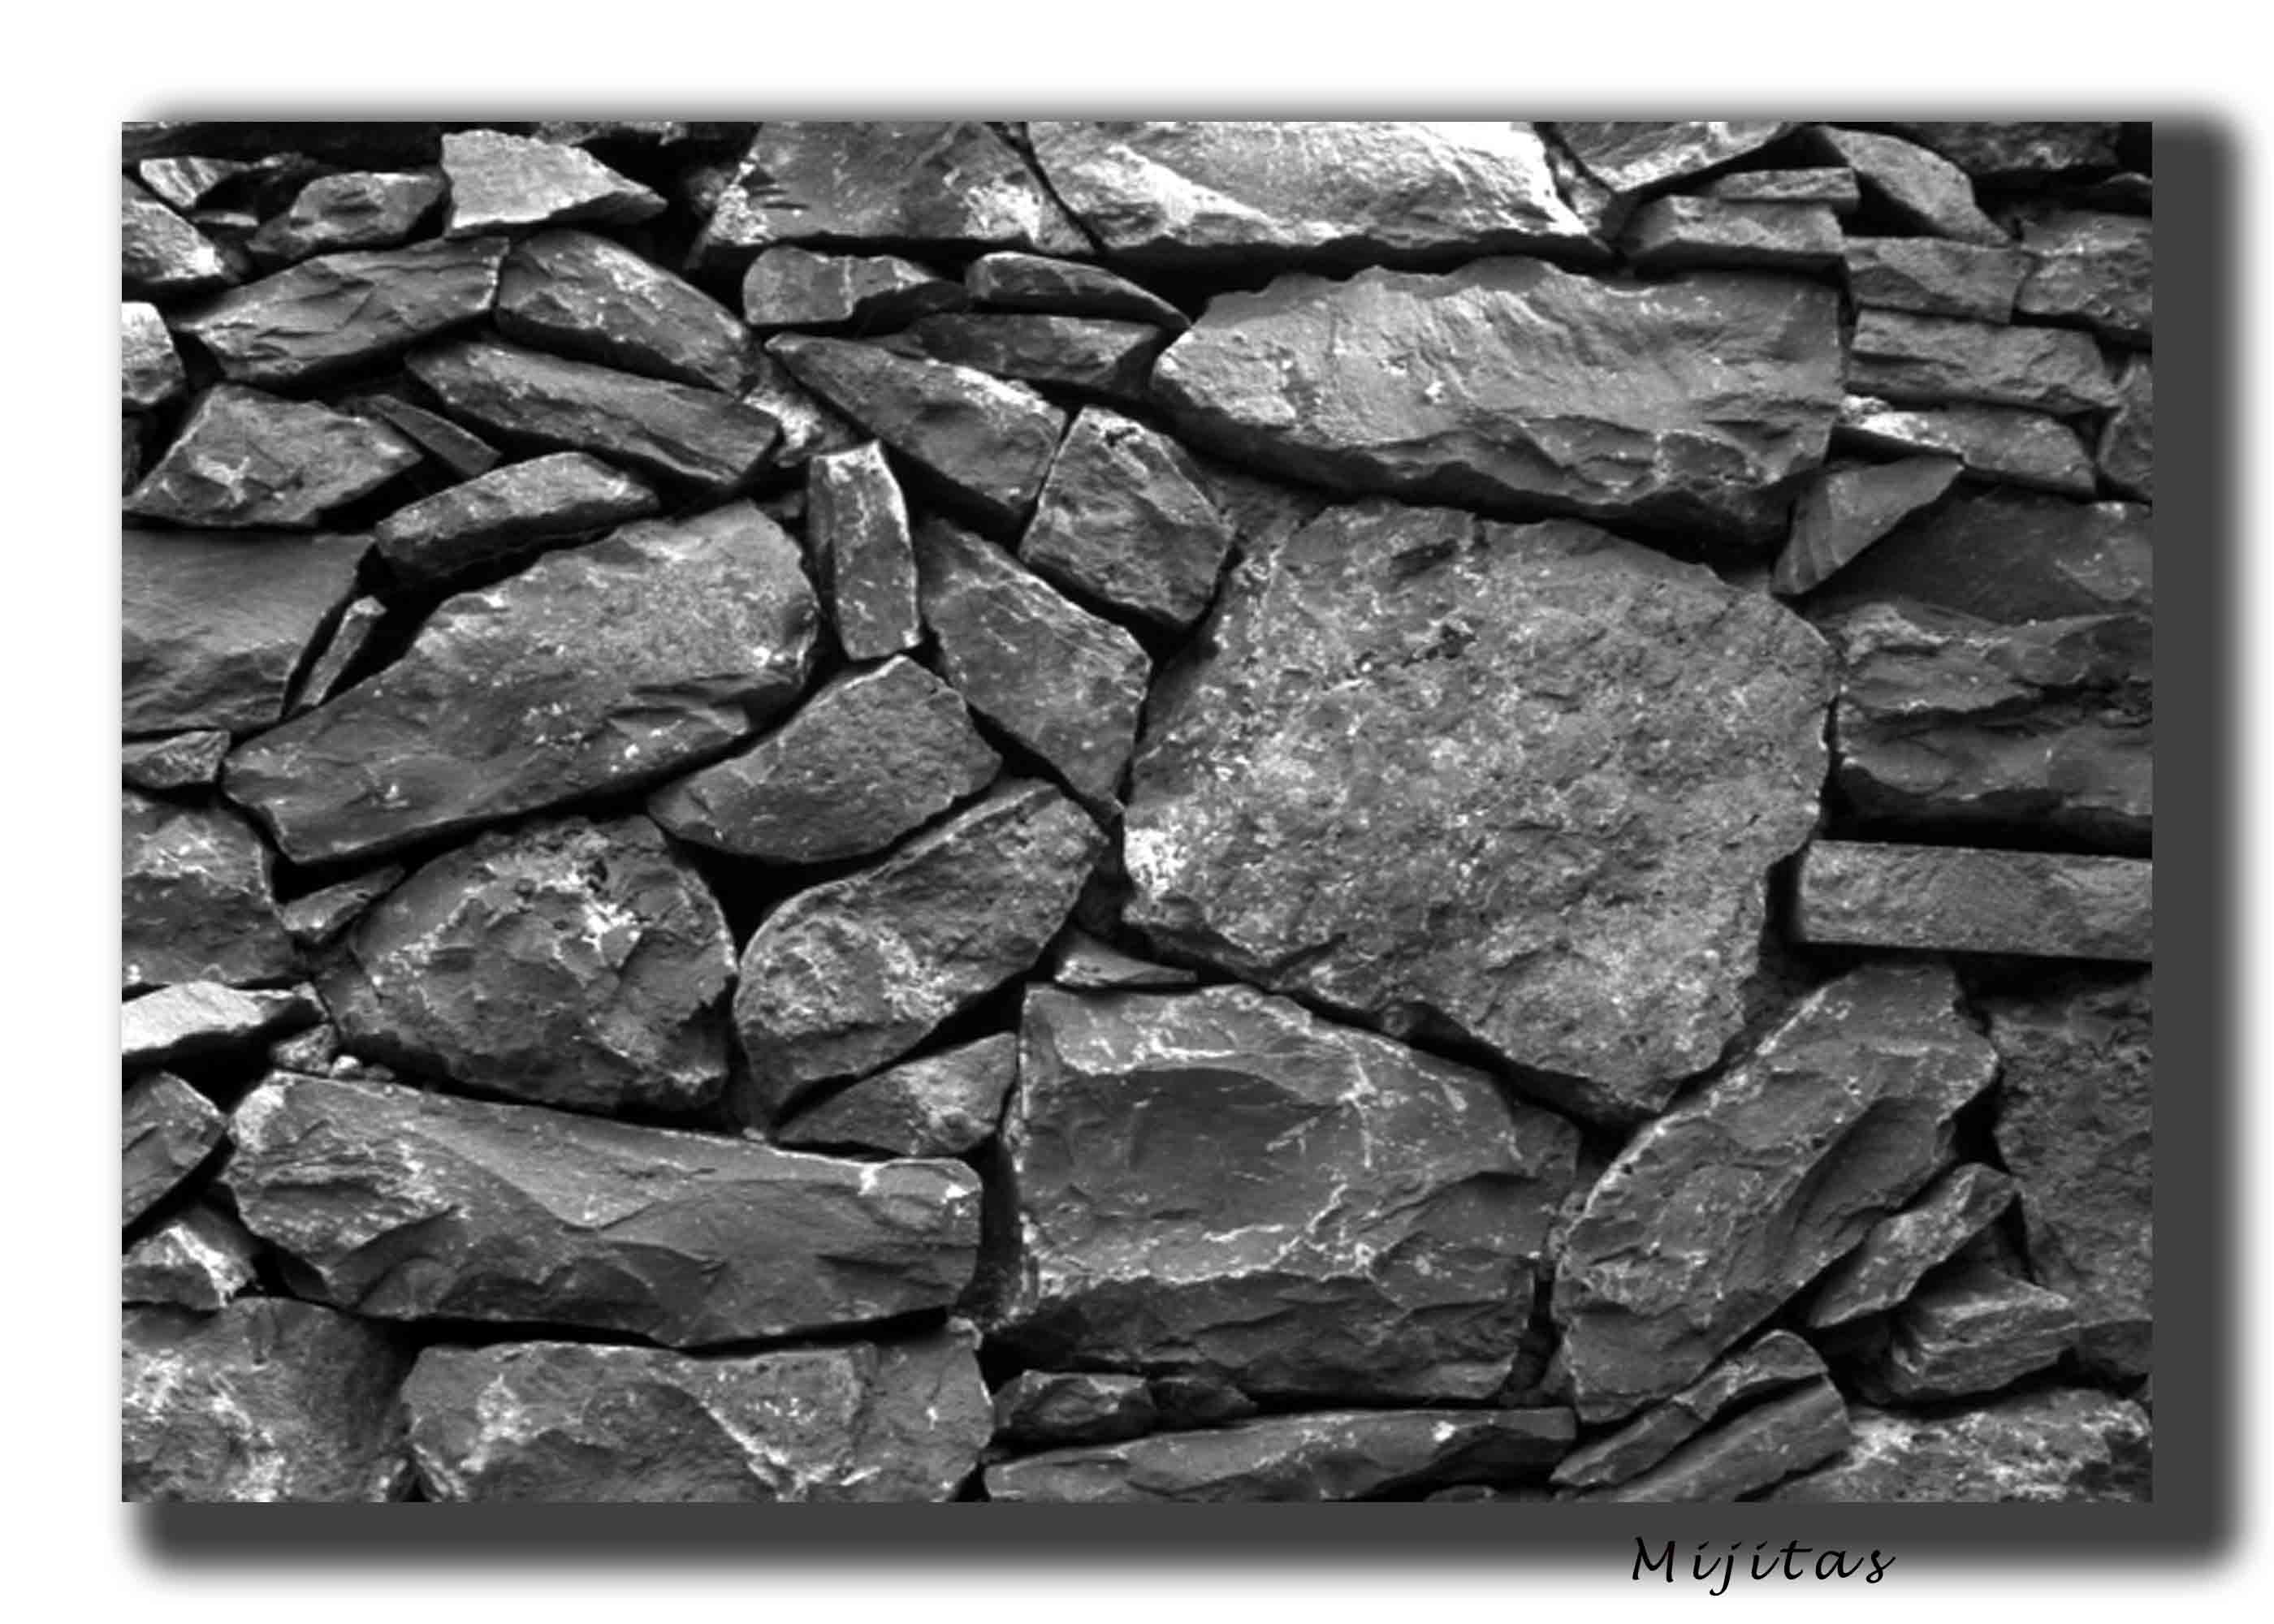 Pared de piedra fotos de varias - Piedras para pared ...